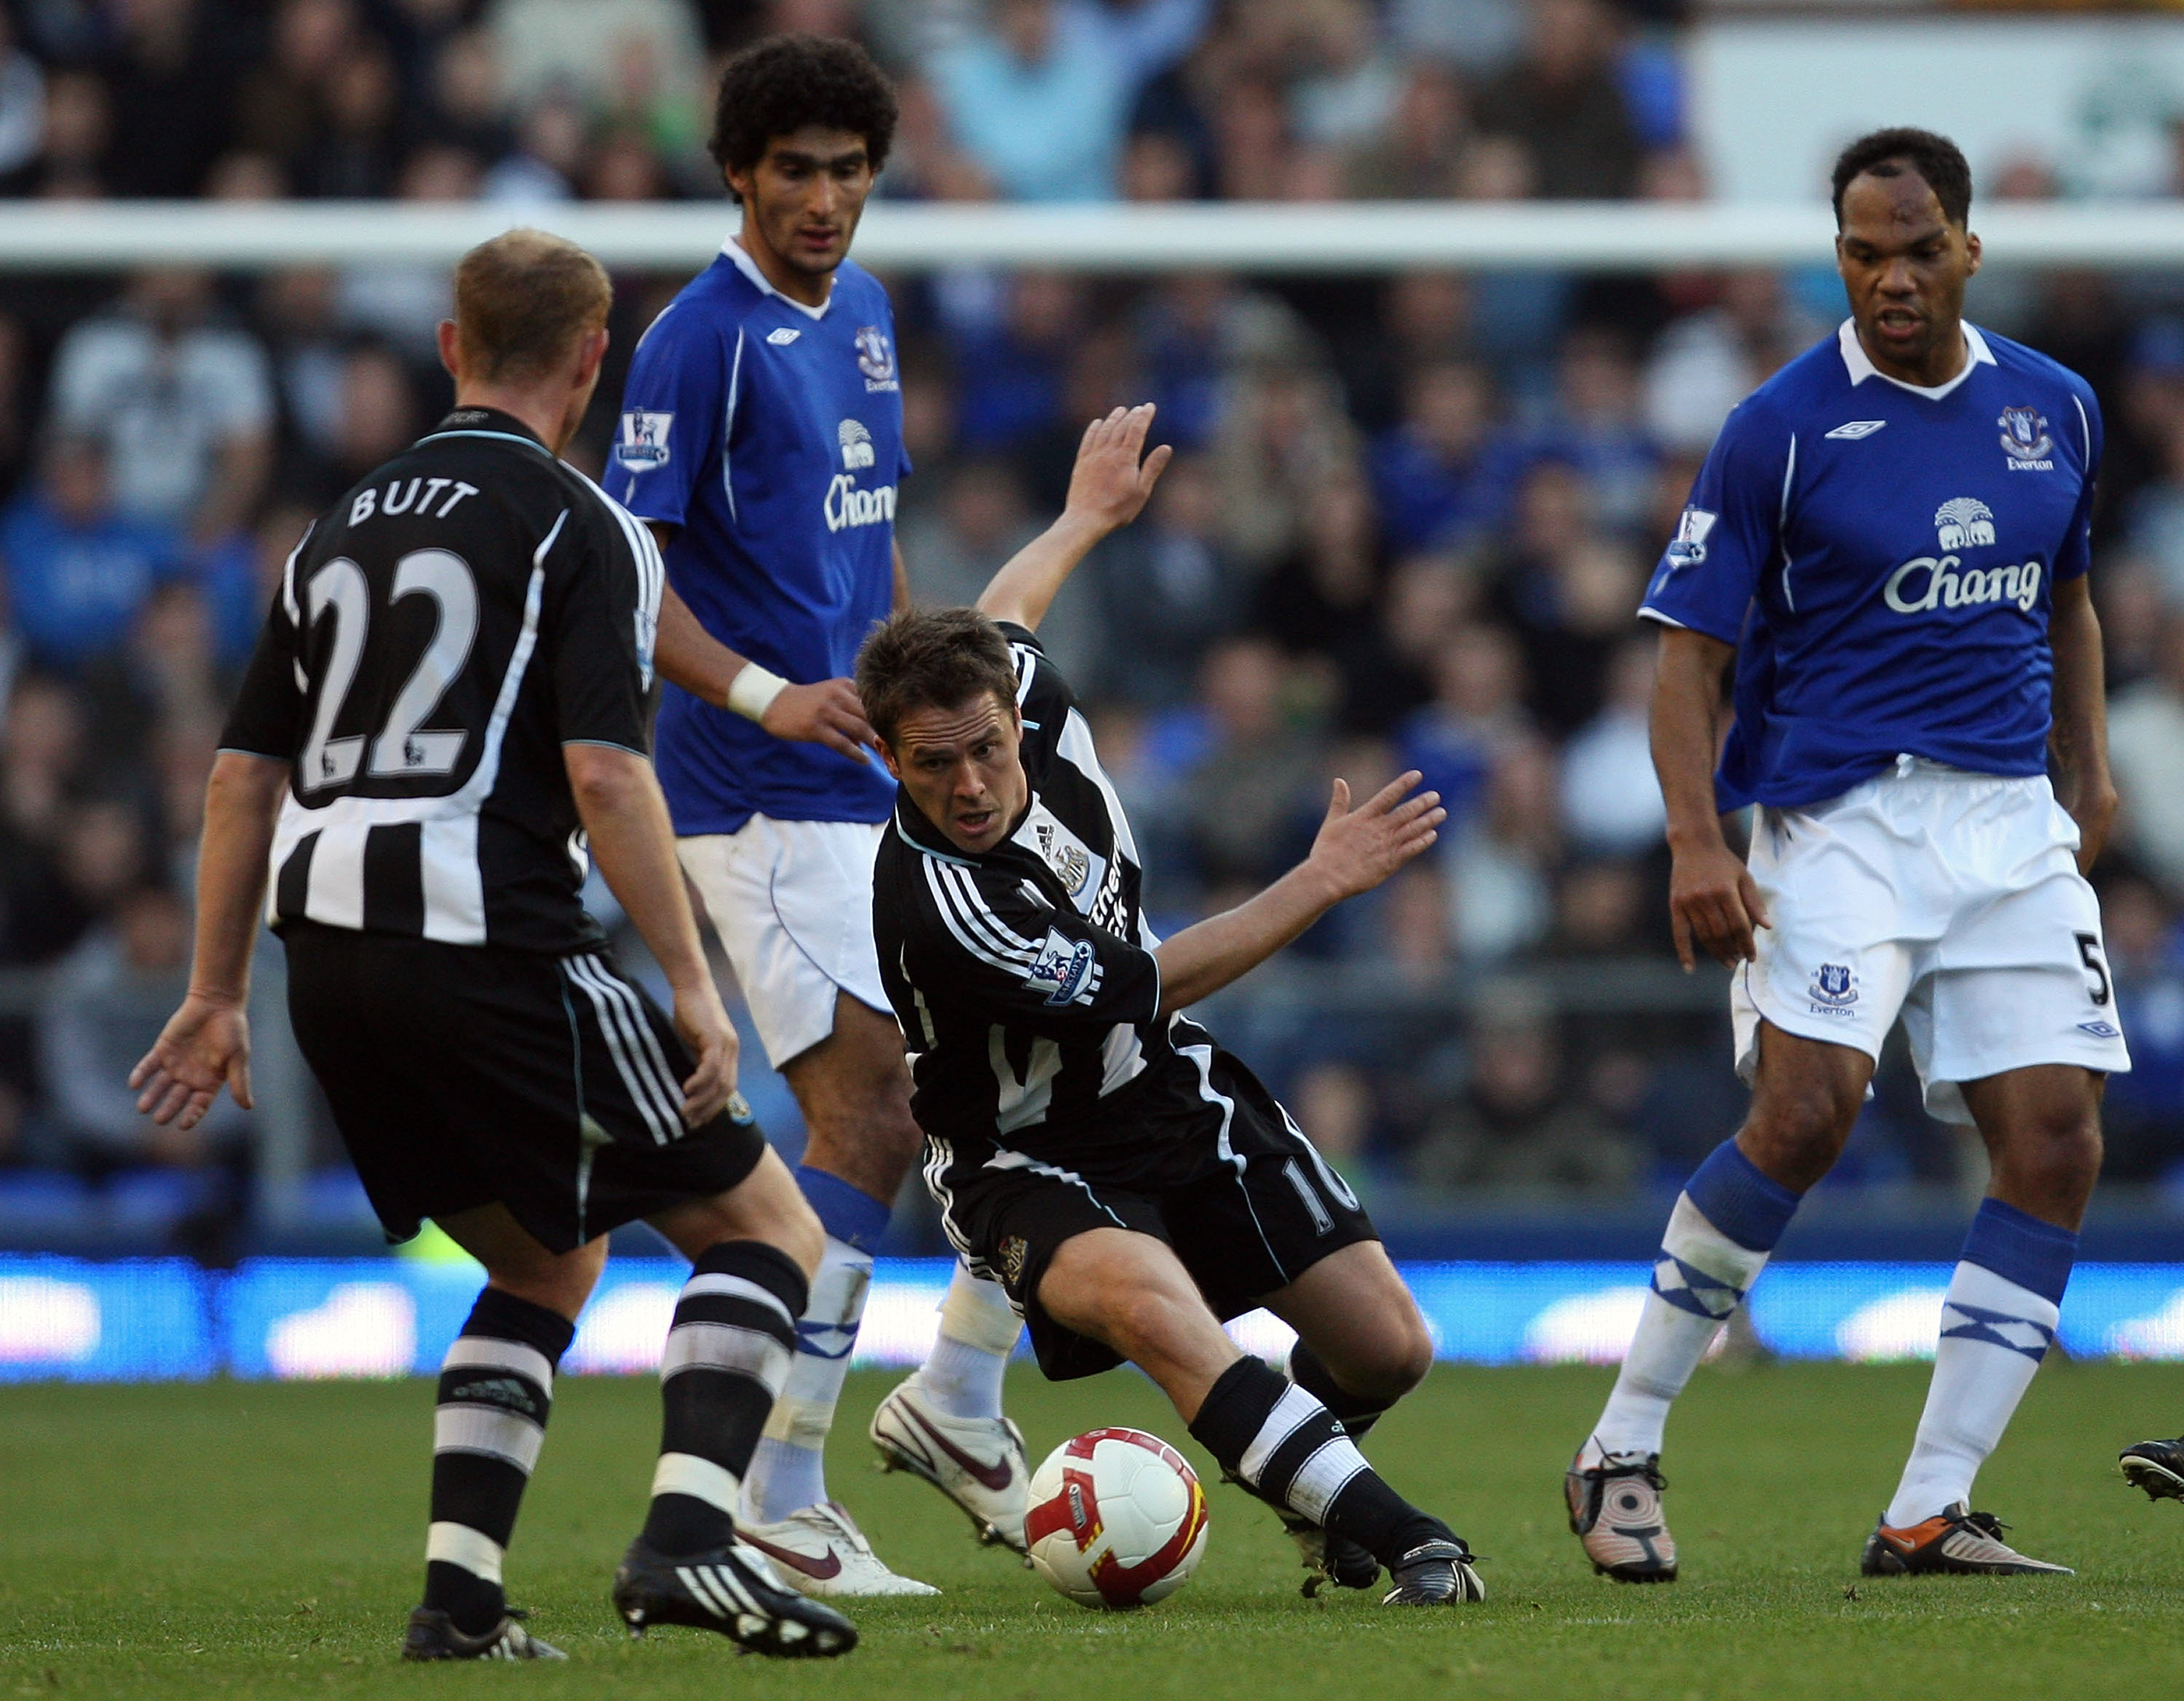 LIVERPOOL, UNITED KINGDOM - OCTOBER 05: Michael Owen of Newcastle in action during the Barclays Premier League match between Everton and Newcastle United at Goodison Park on October 5, 2008 in Liverpool, England. (Photo by Hamish Blair/Getty Images)